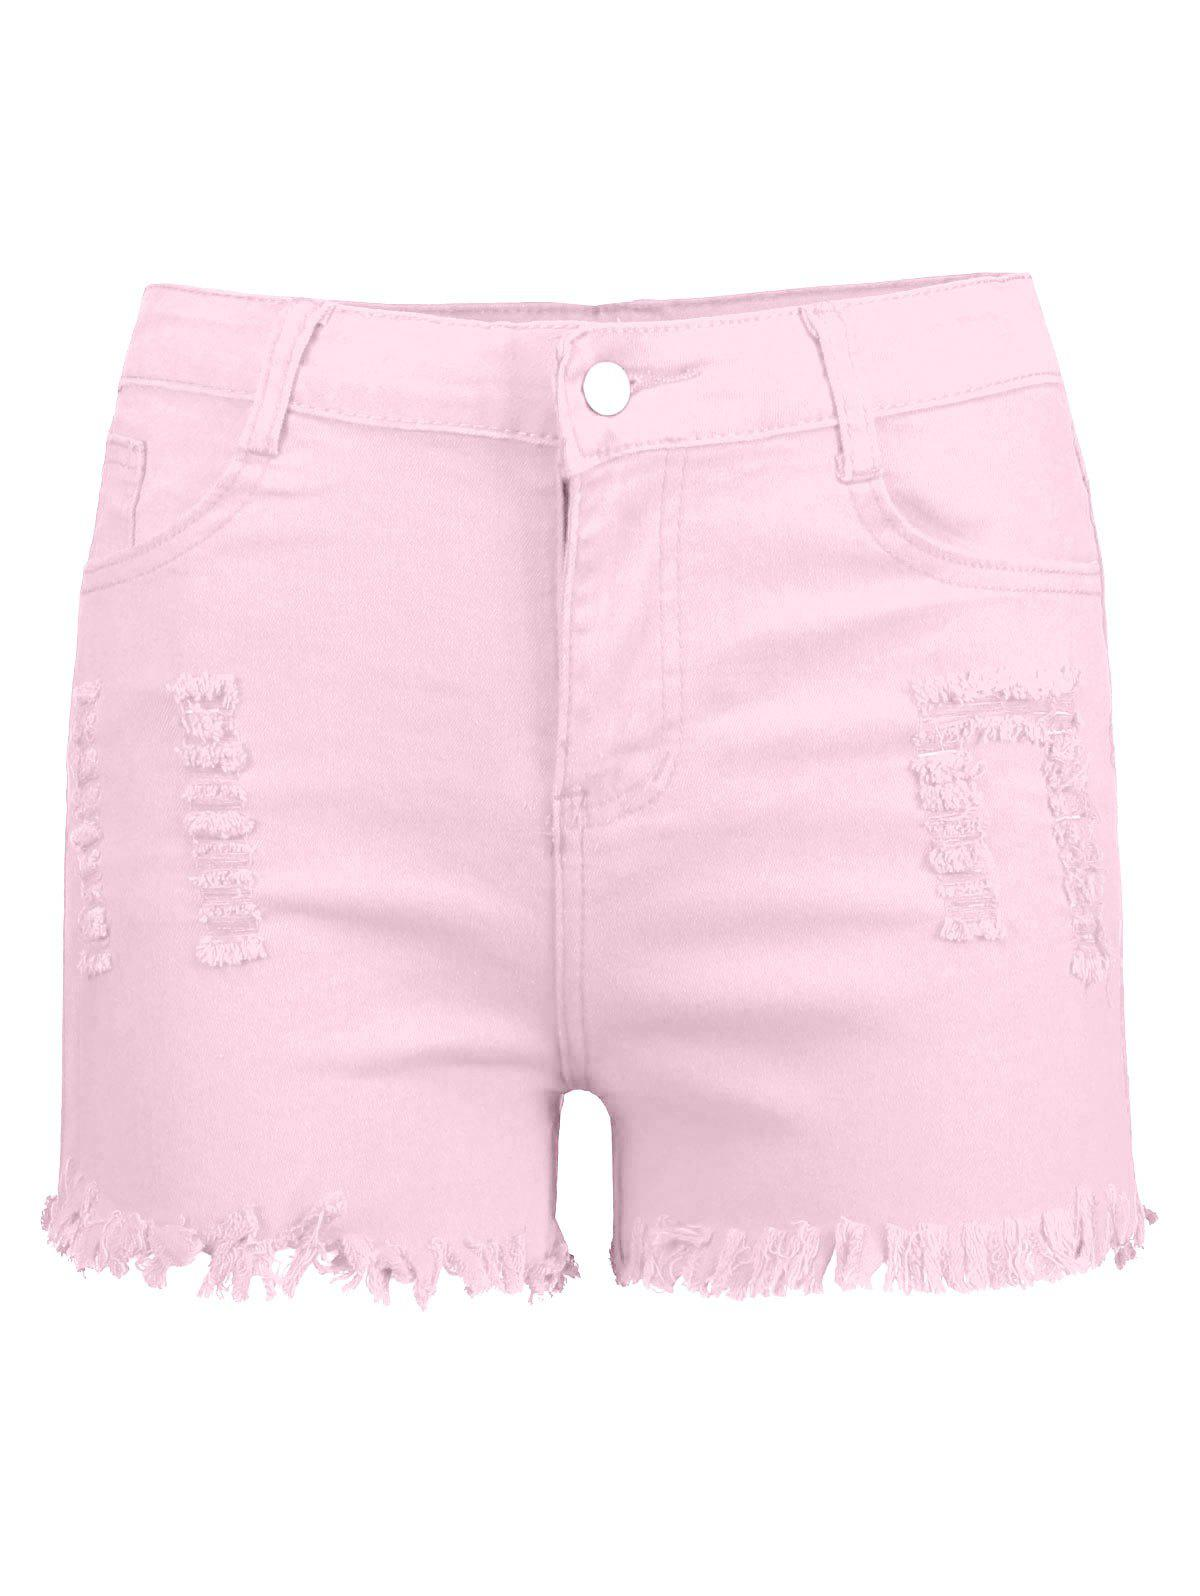 Frayed Ripped High Waisted Denim Shorts bwgh brooklyn we go hard pубашка